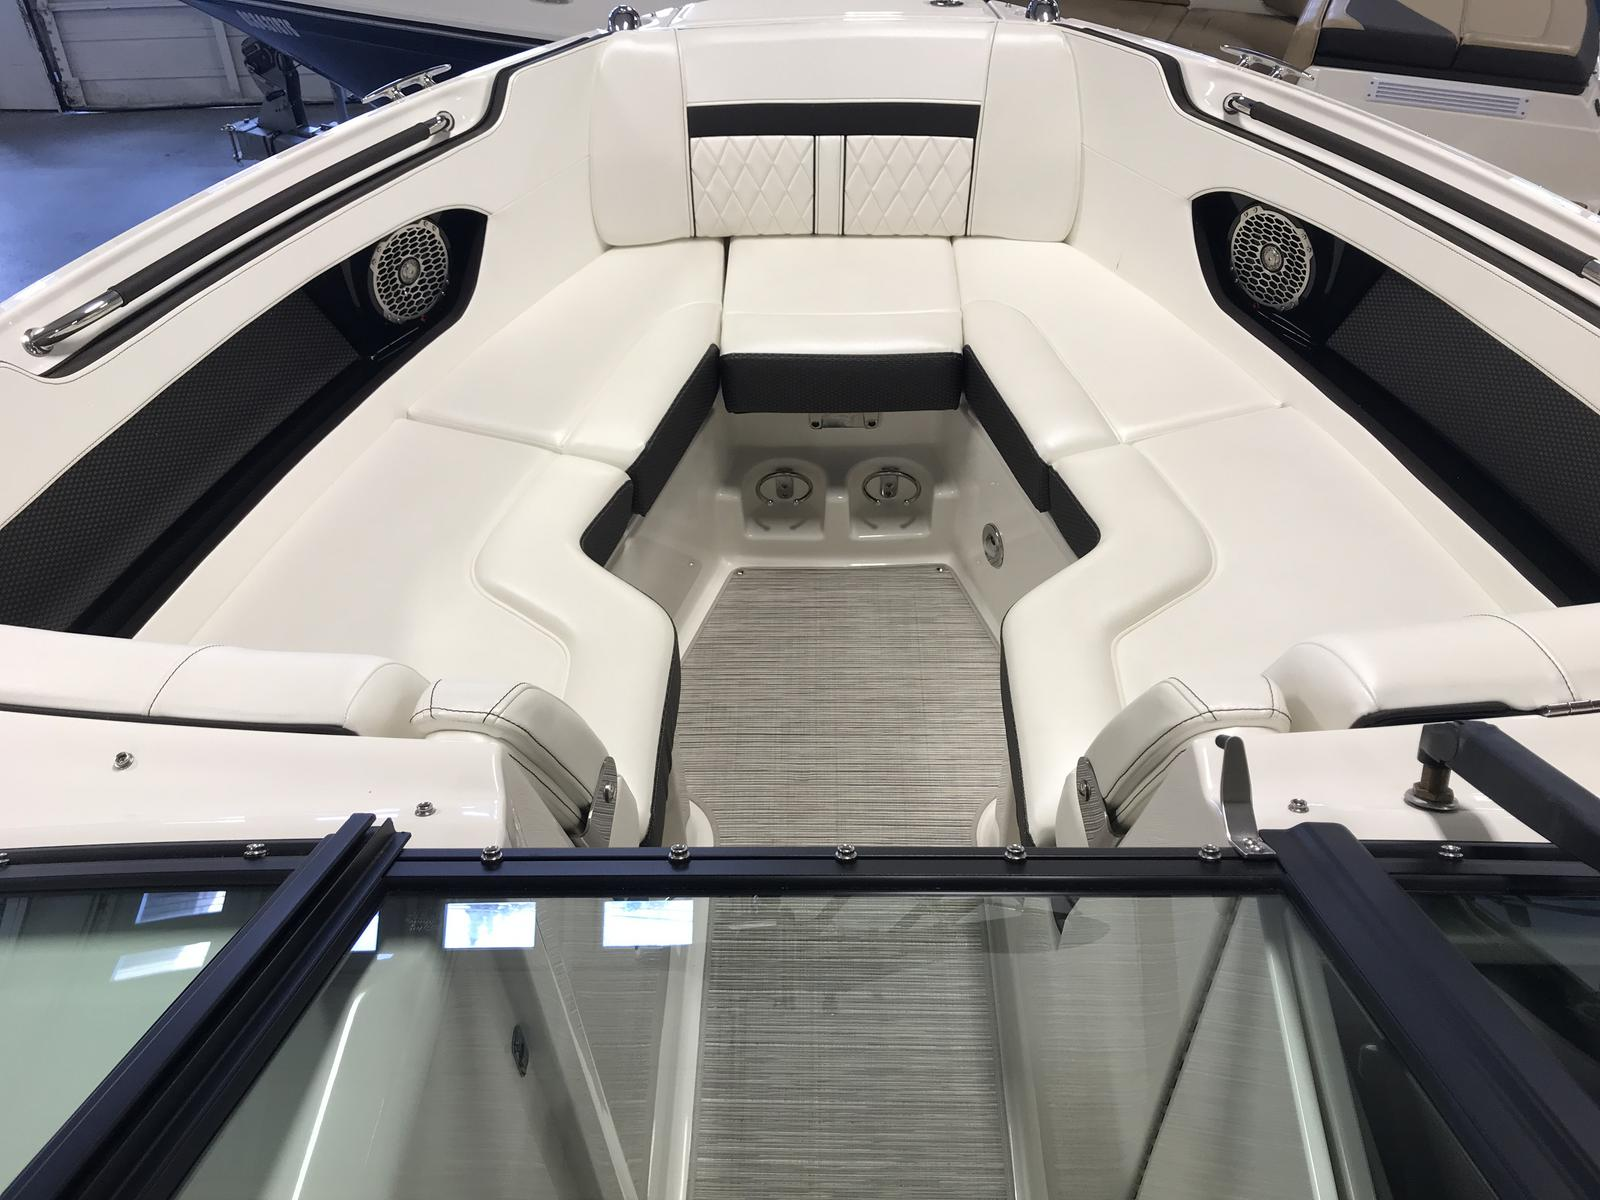 2018 Sea Ray boat for sale, model of the boat is SLX250 & Image # 4 of 6